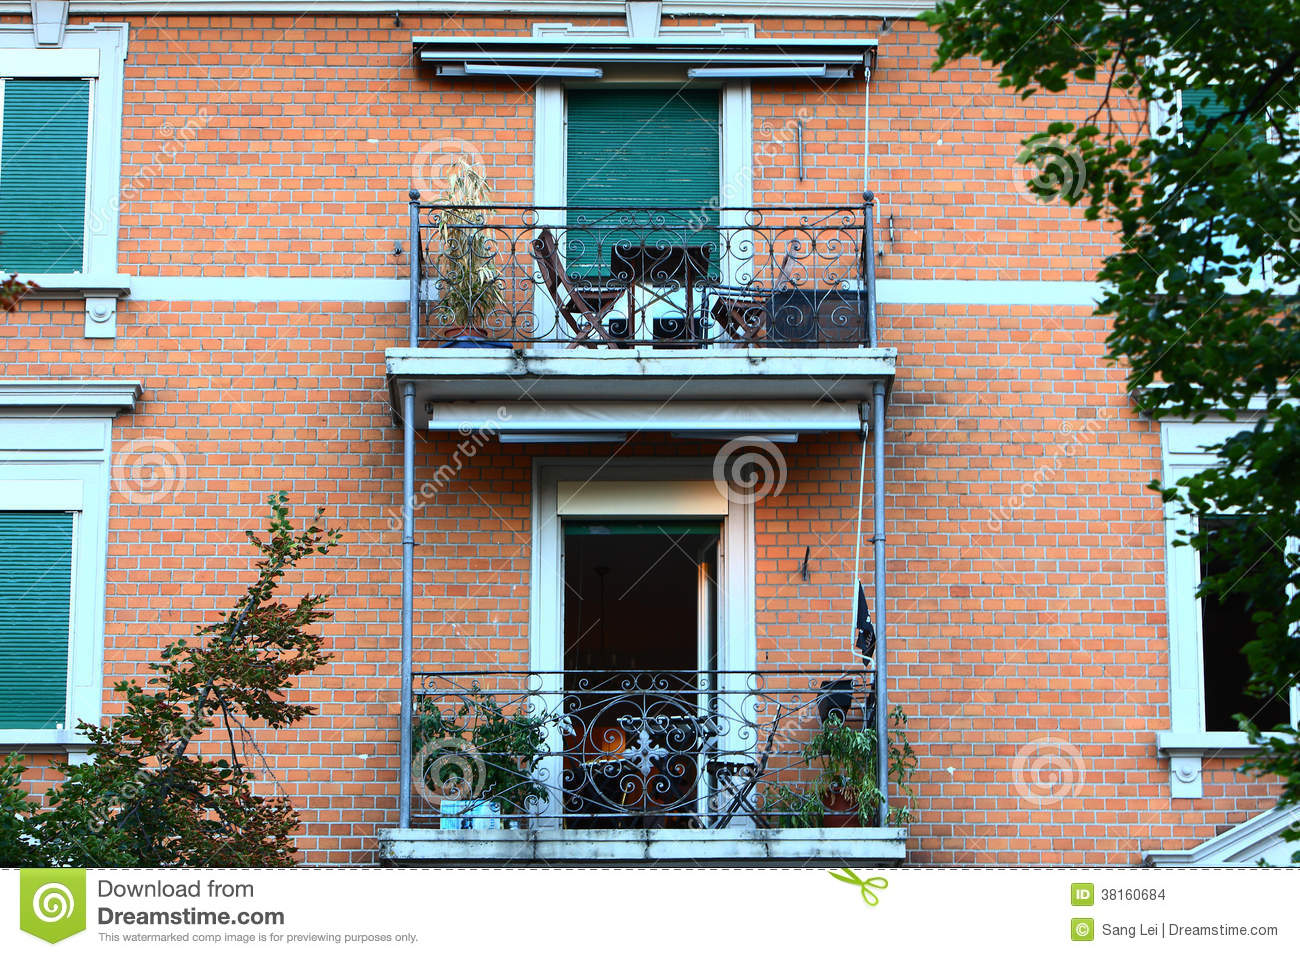 Building balcony stock images image 38160684 for Building balcony